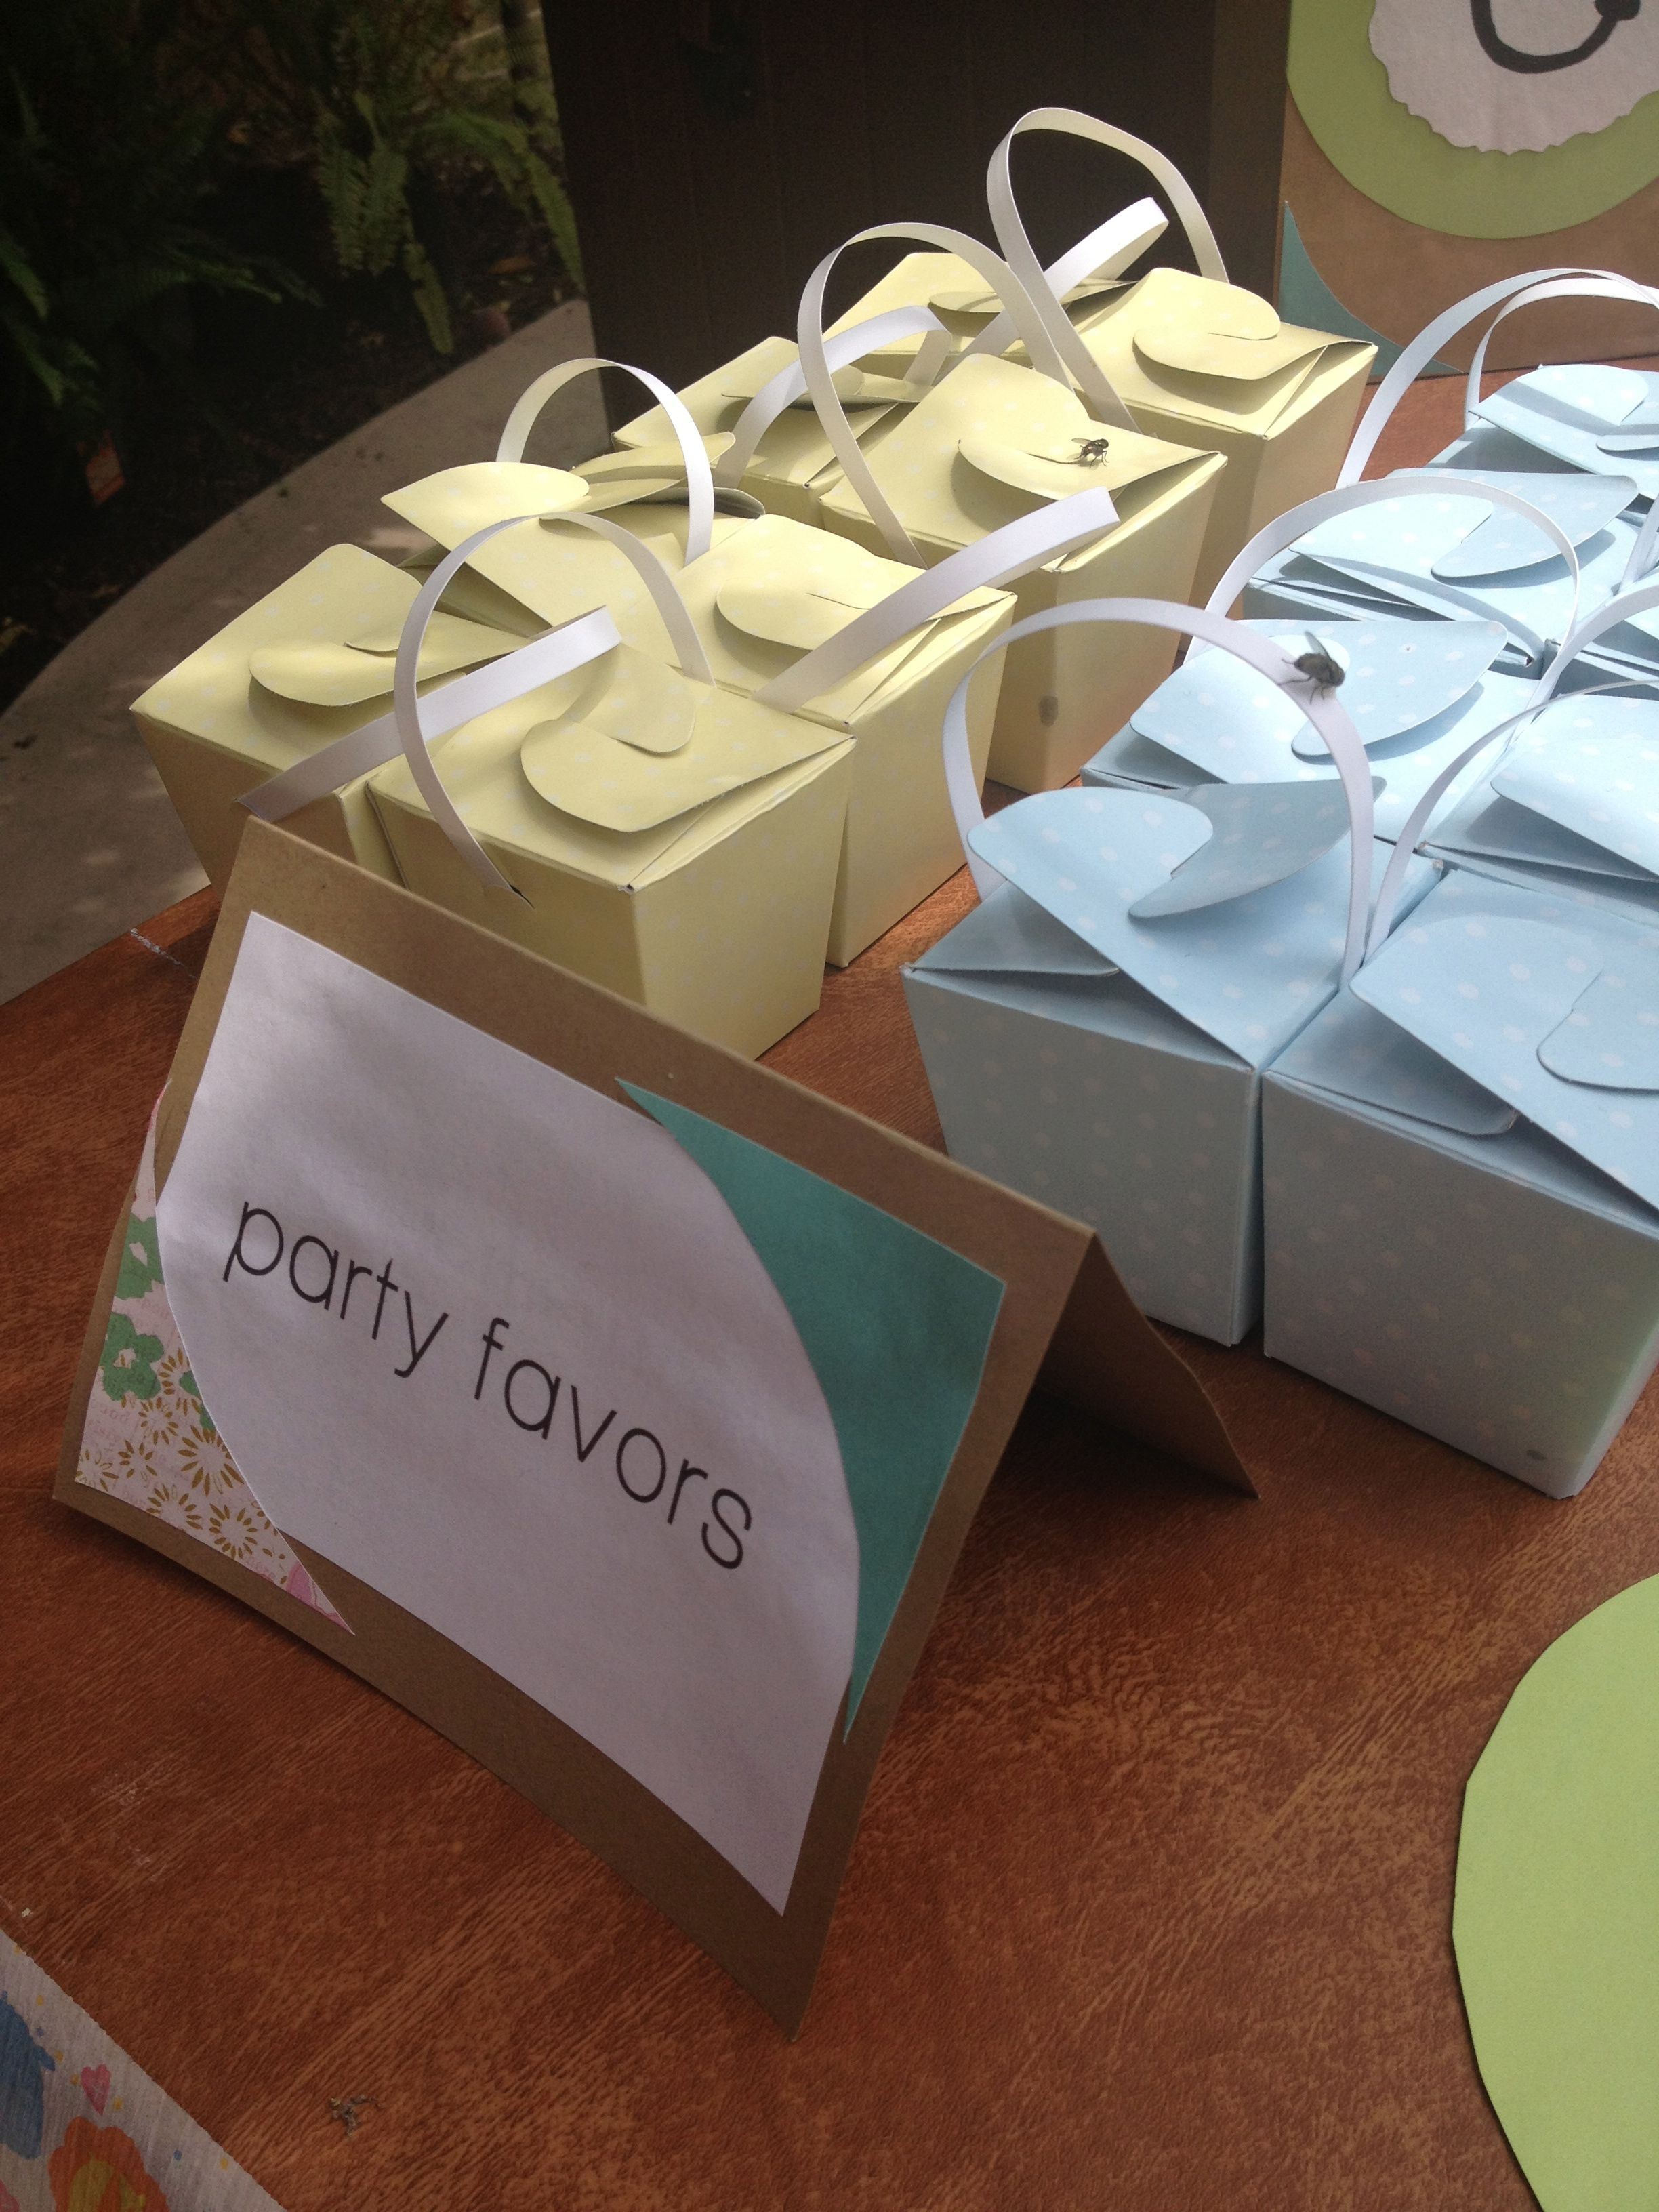 Baby Shower Favors To Buy ~ Another great find from the dollar tree gift boxes filled